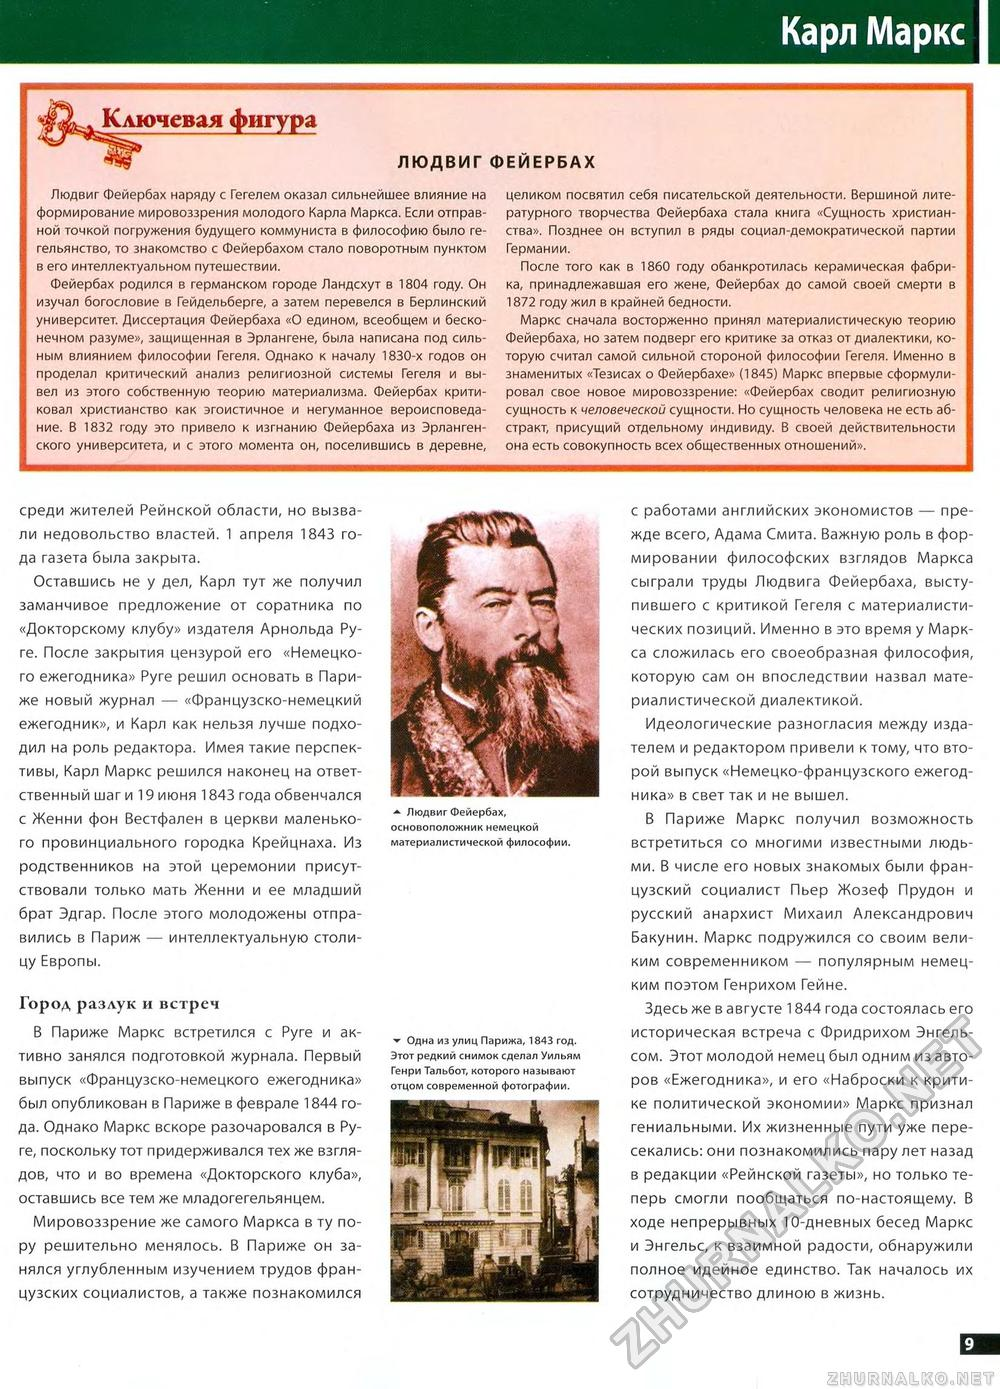 eleventh thesis on feuerbach Quoting a book in marxs 11th thesis on feuerbach – line leader pediatric therapymarx's 11th thesis on feuerbach – marxists internet archive karl marx 1845.